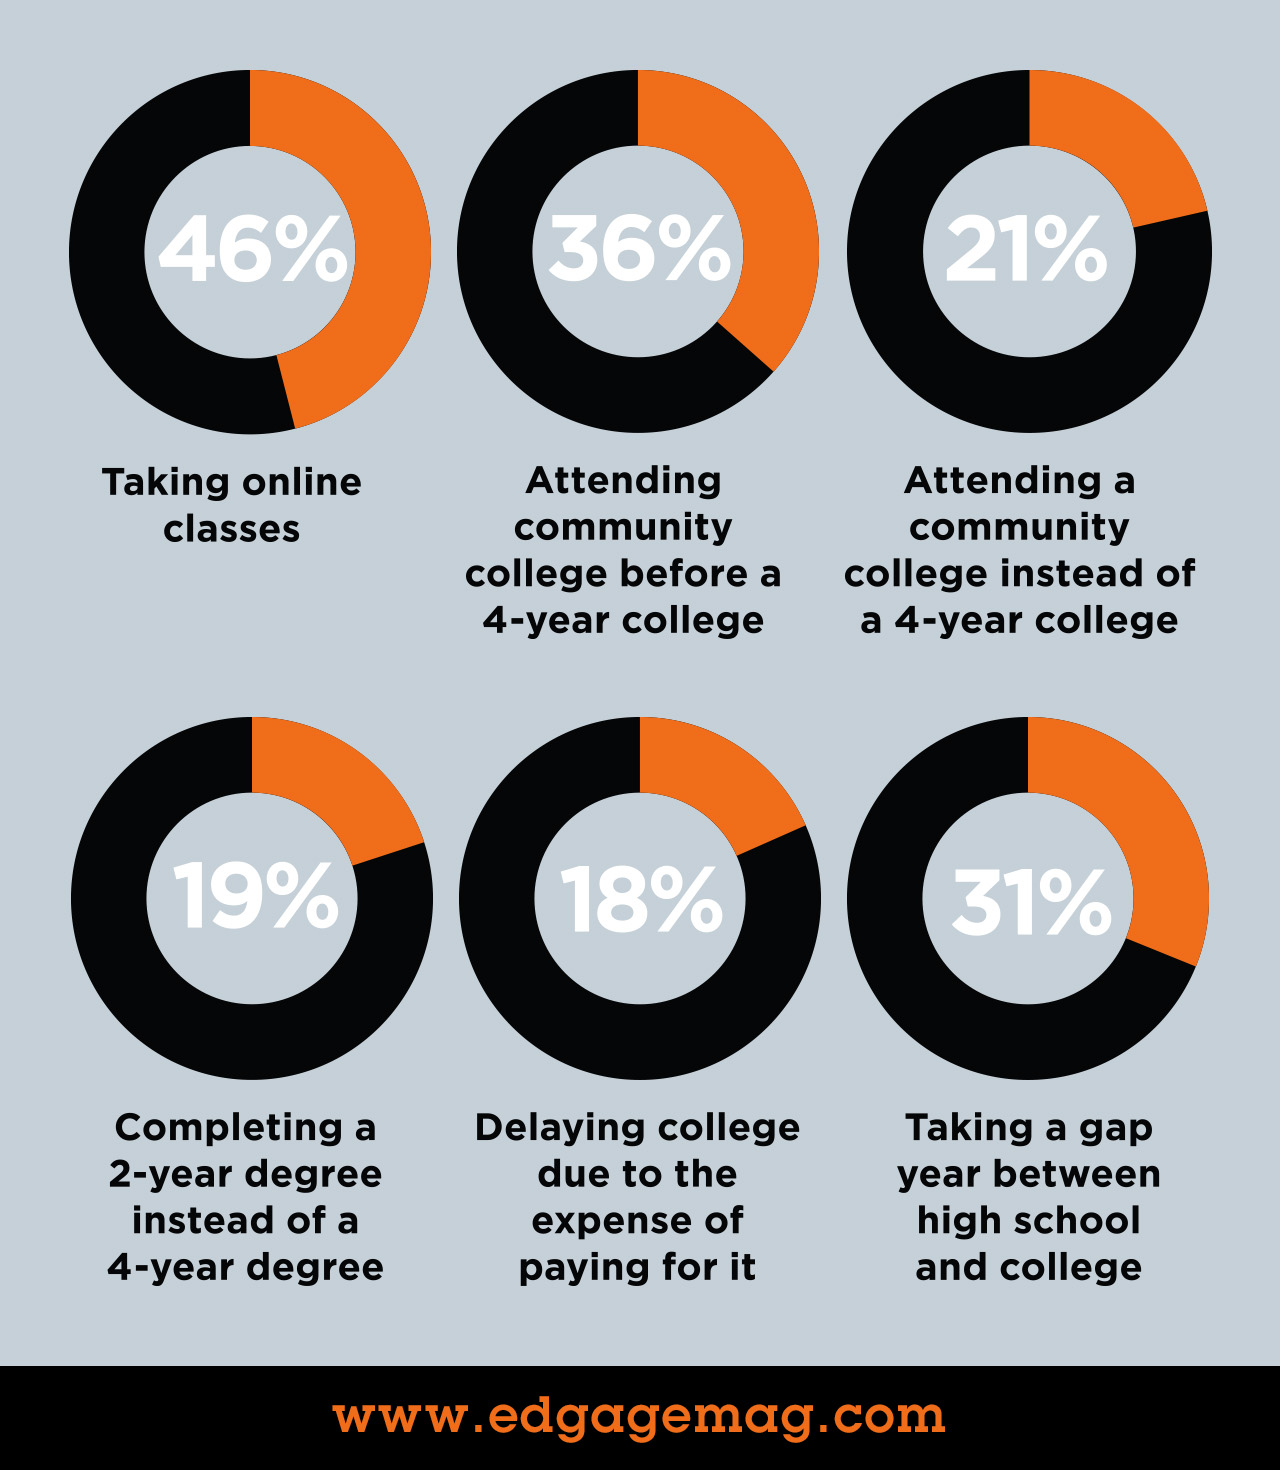 Survey shows university alternatives for Gen Z